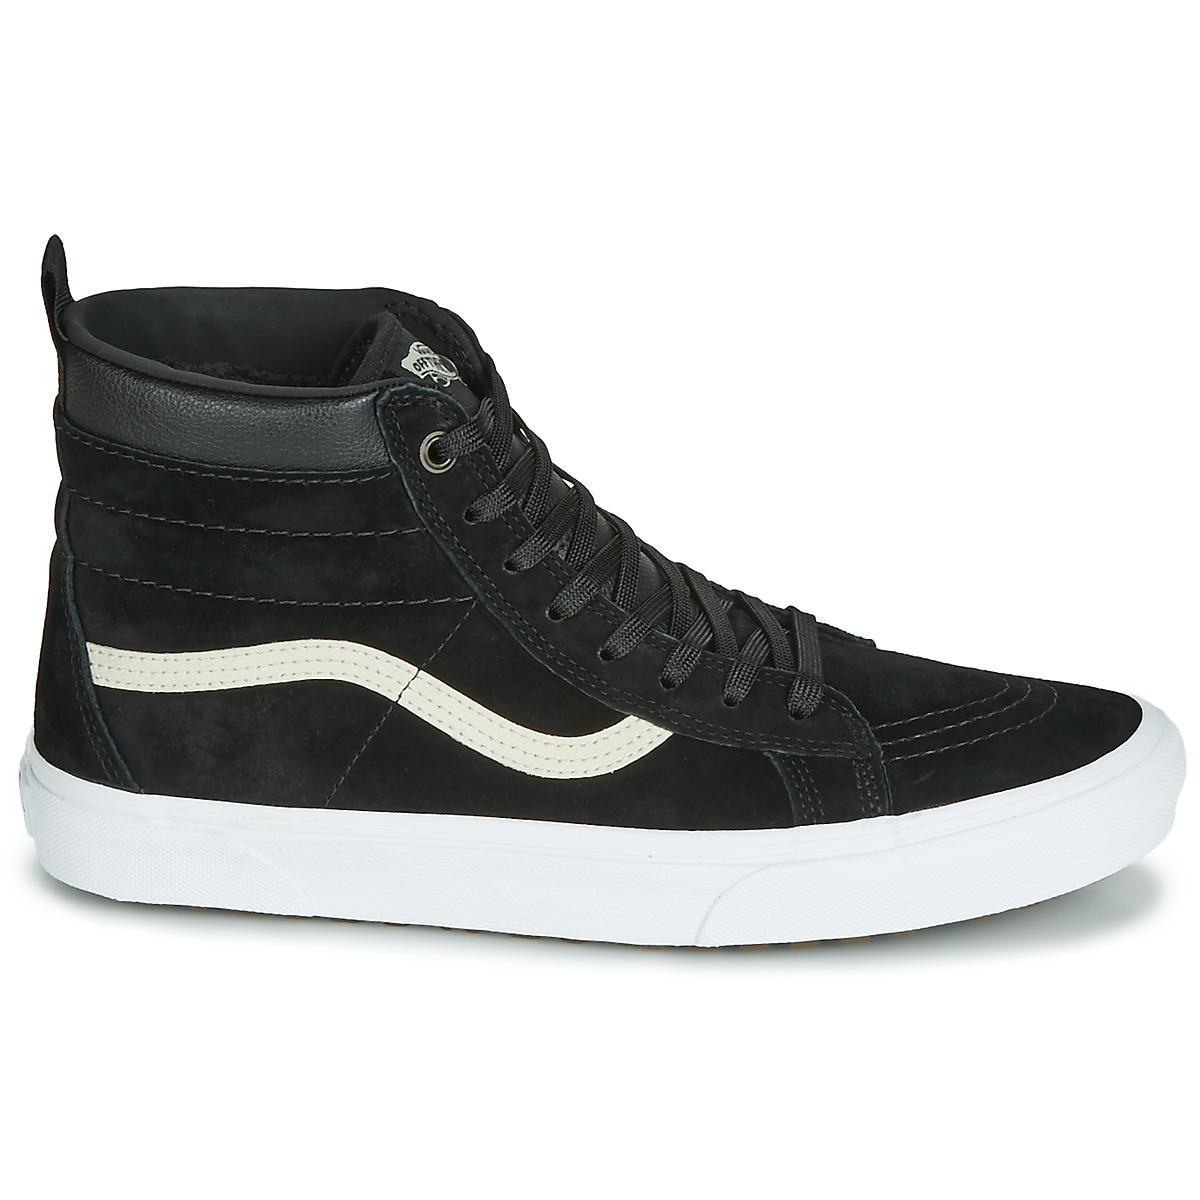 14f28b6931 Vans - Black Sk8-hi Men s Shoes (high-top Trainers) In Multicolour. View  fullscreen